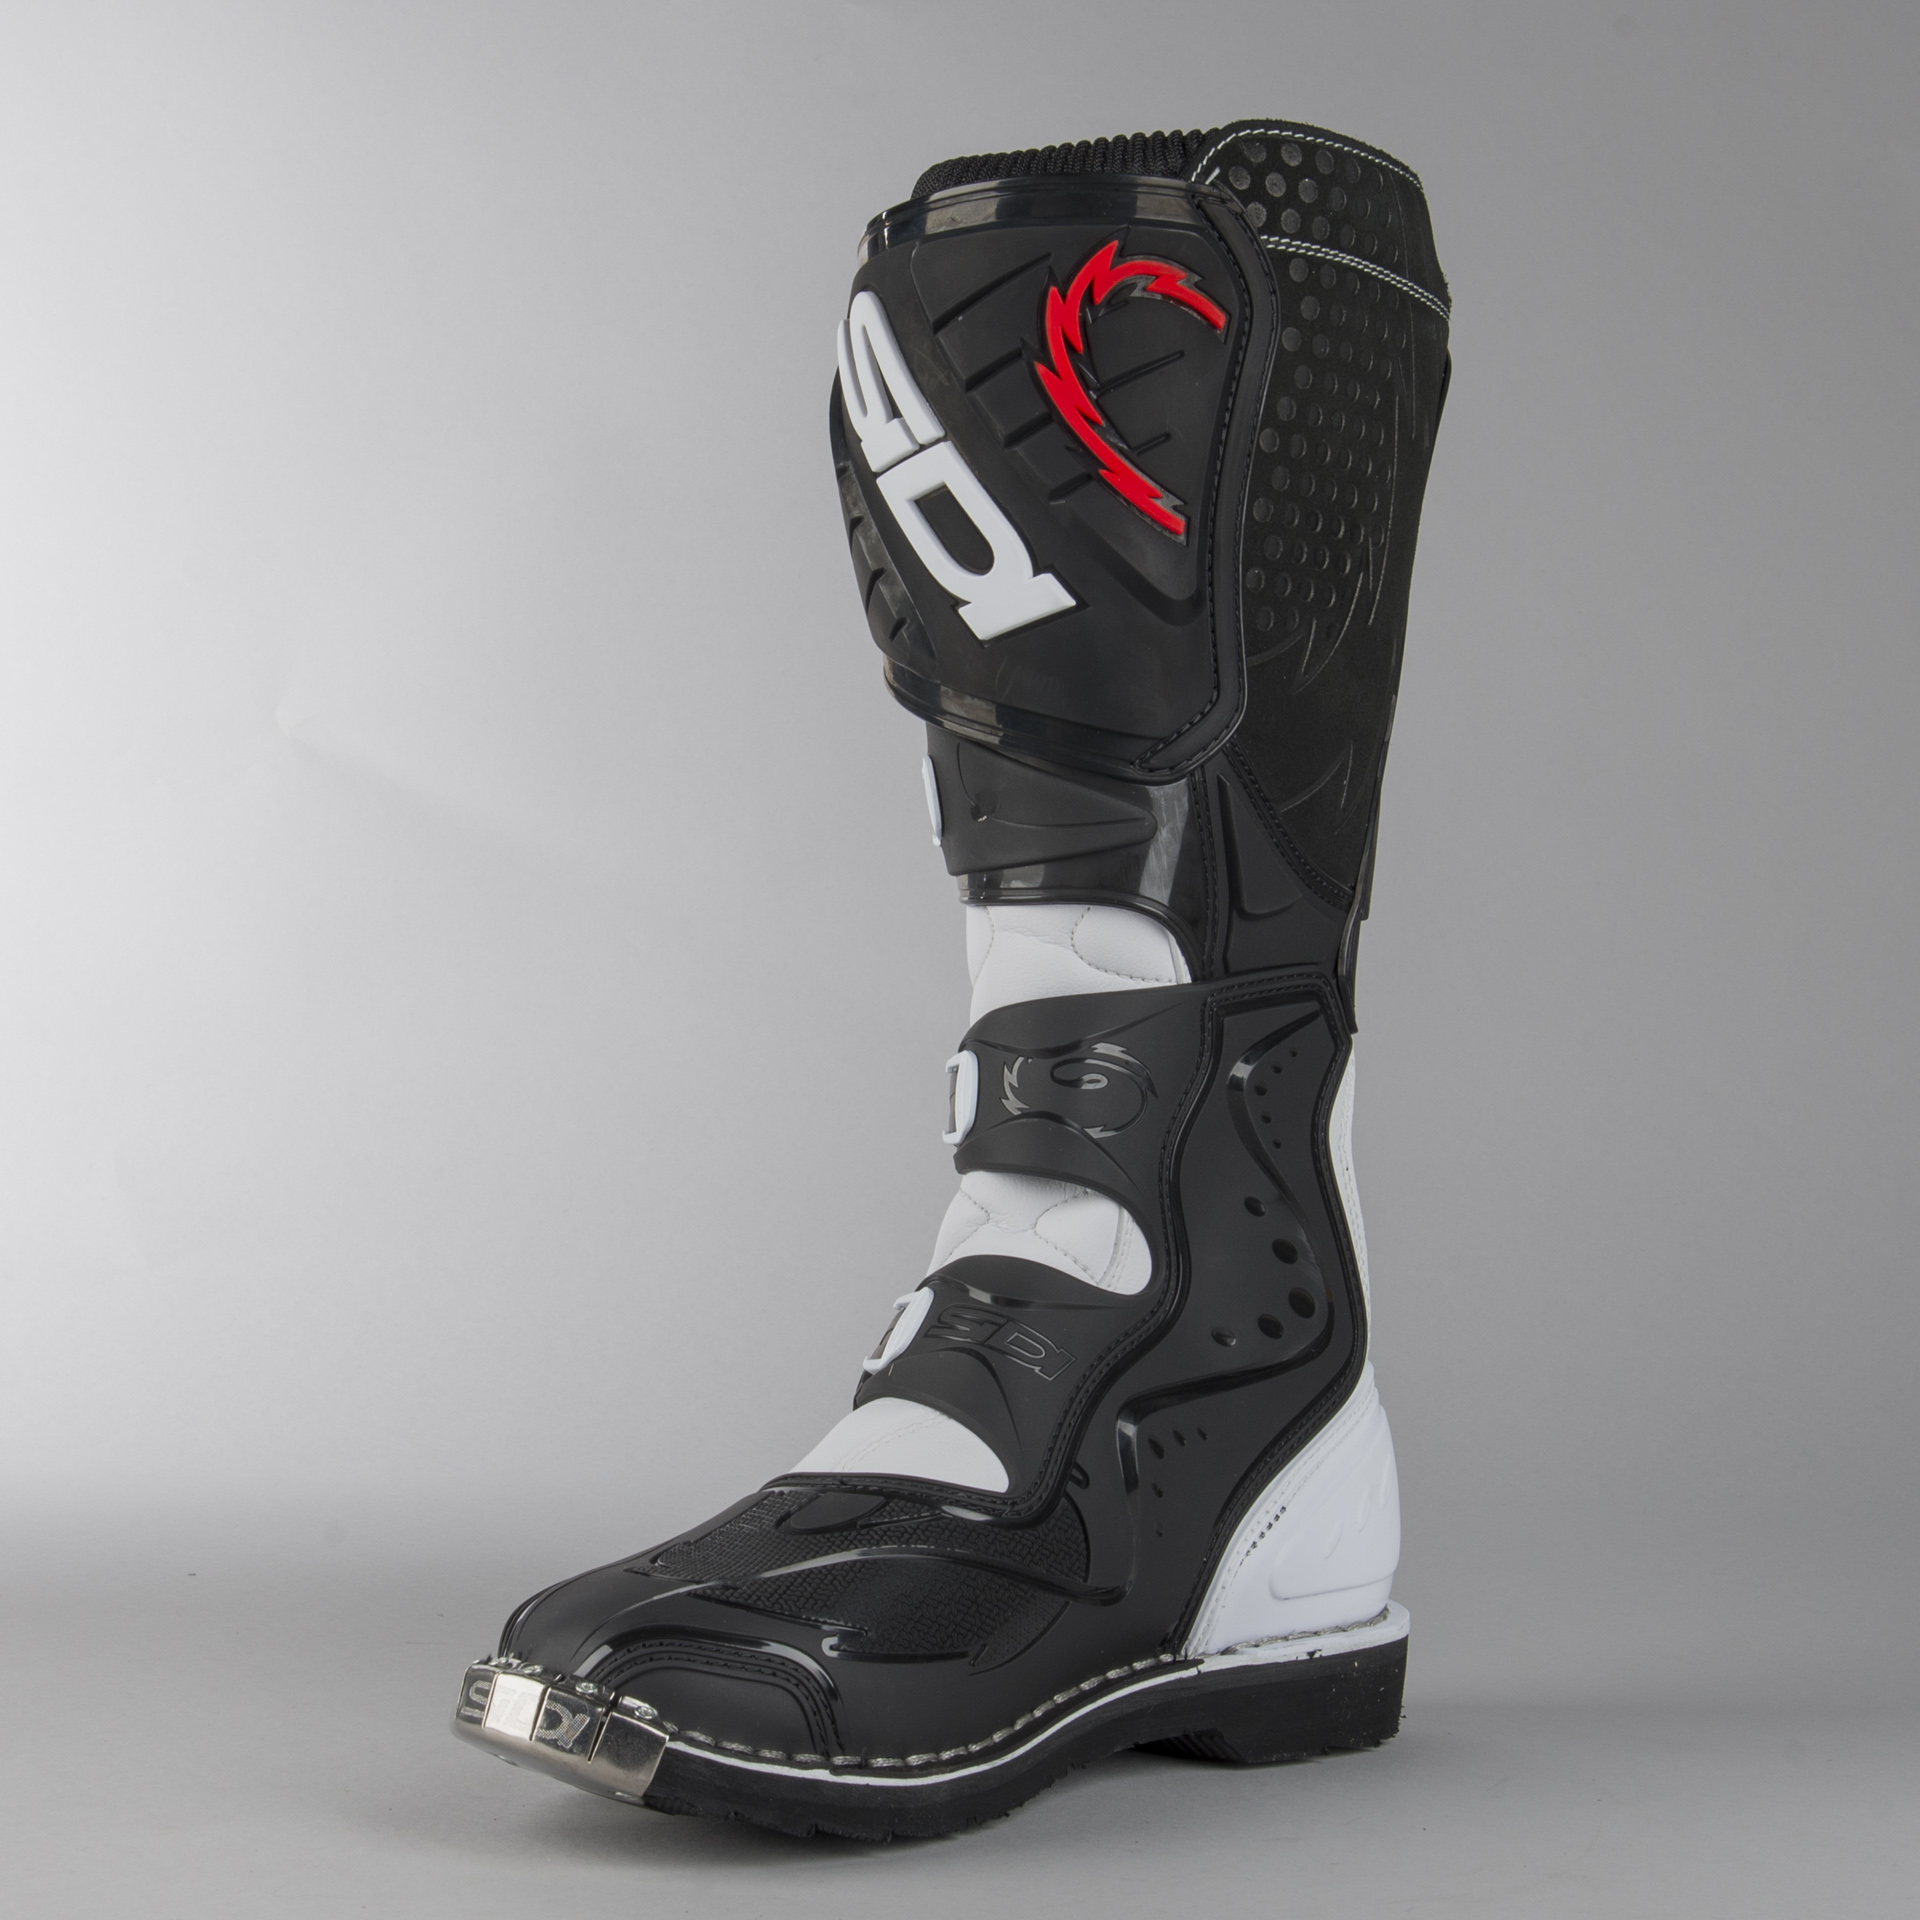 Sidi Agueda MX Boots White Black Buy now, get 10% off